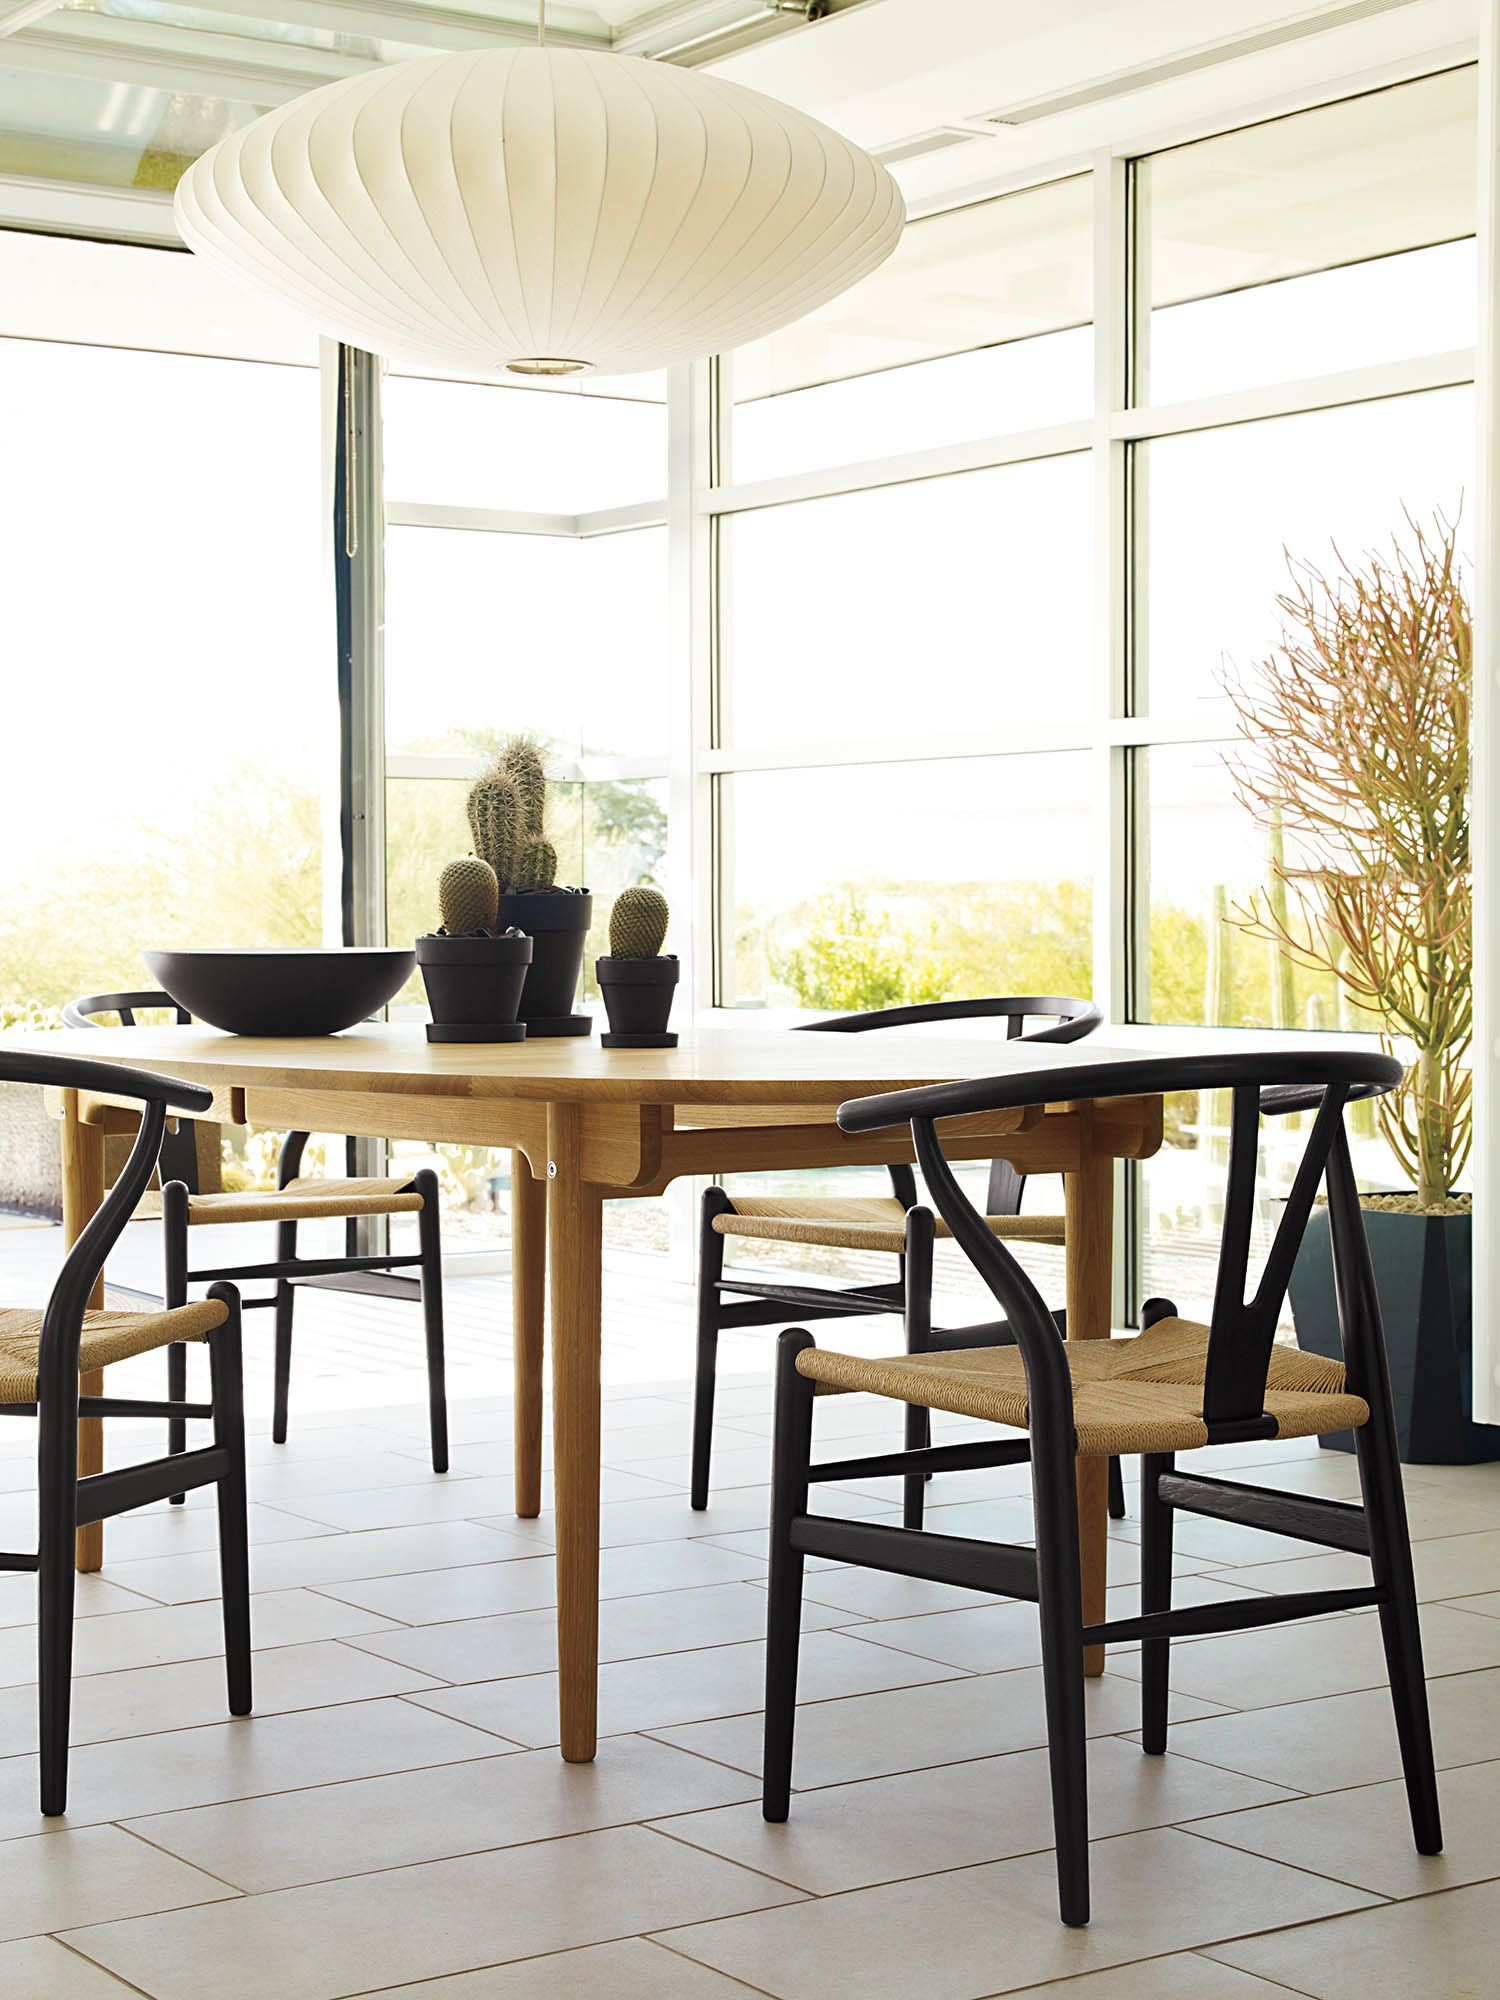 Hans Wegner Chairs Design Within Reach Mesh Office Chair With Lumbar Support Wishbone Furniture Pinterest